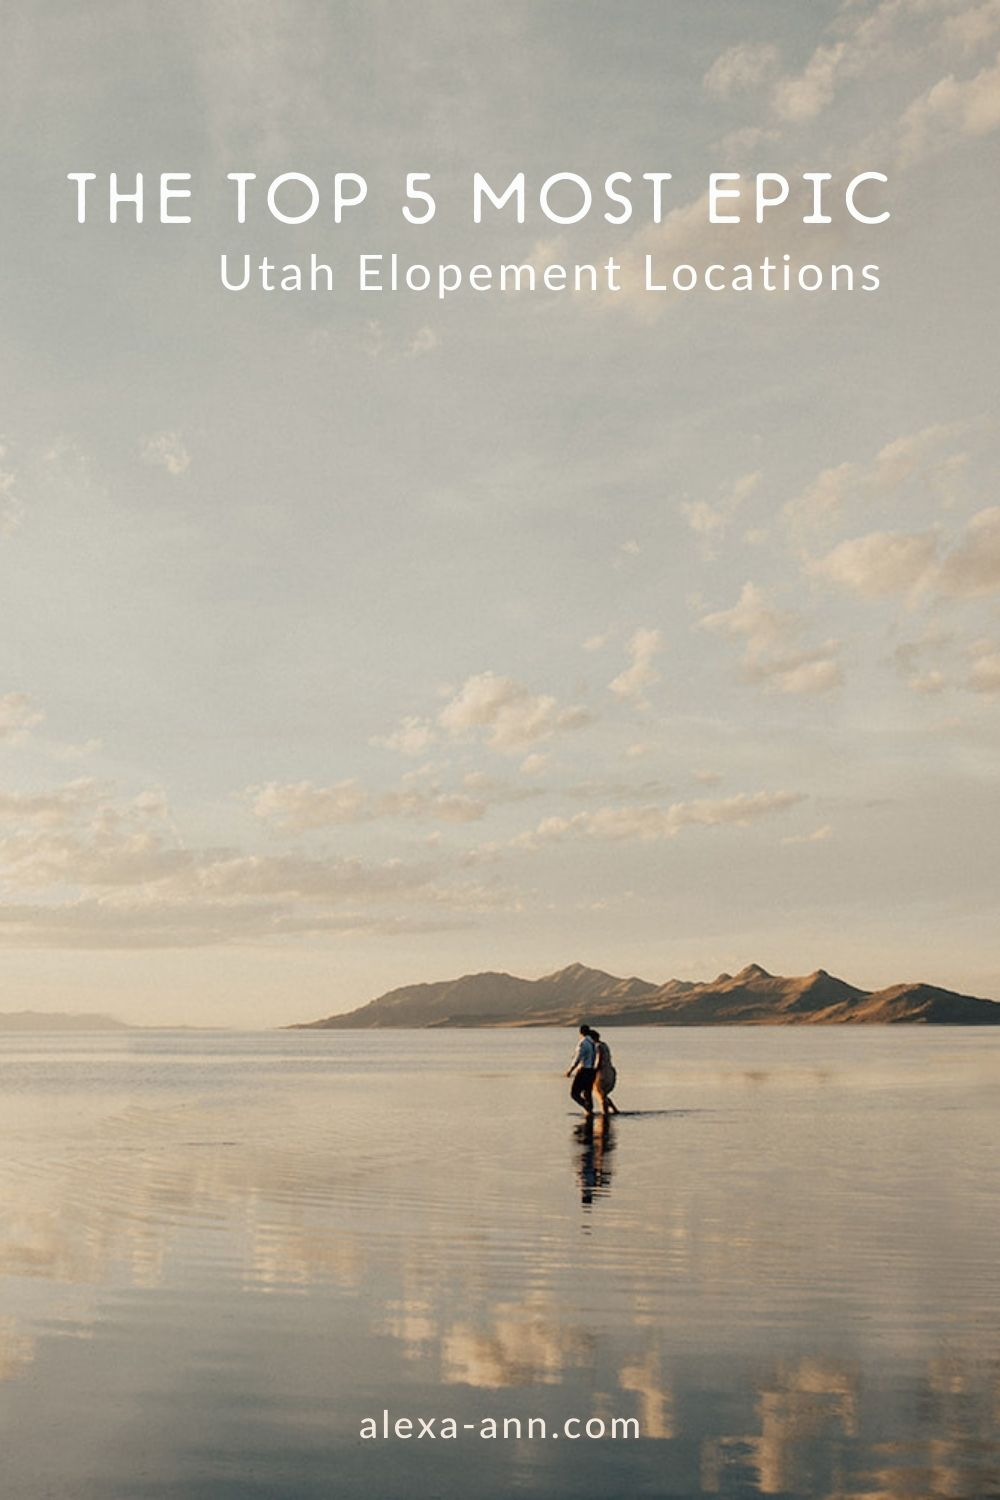 Image of a couple holding hands while walking across the Bonneville Salt Flats, photographed by Alexa Ann Photography overlaid with text that reads The Top 5 Most Epic Utah Elopement Locations.